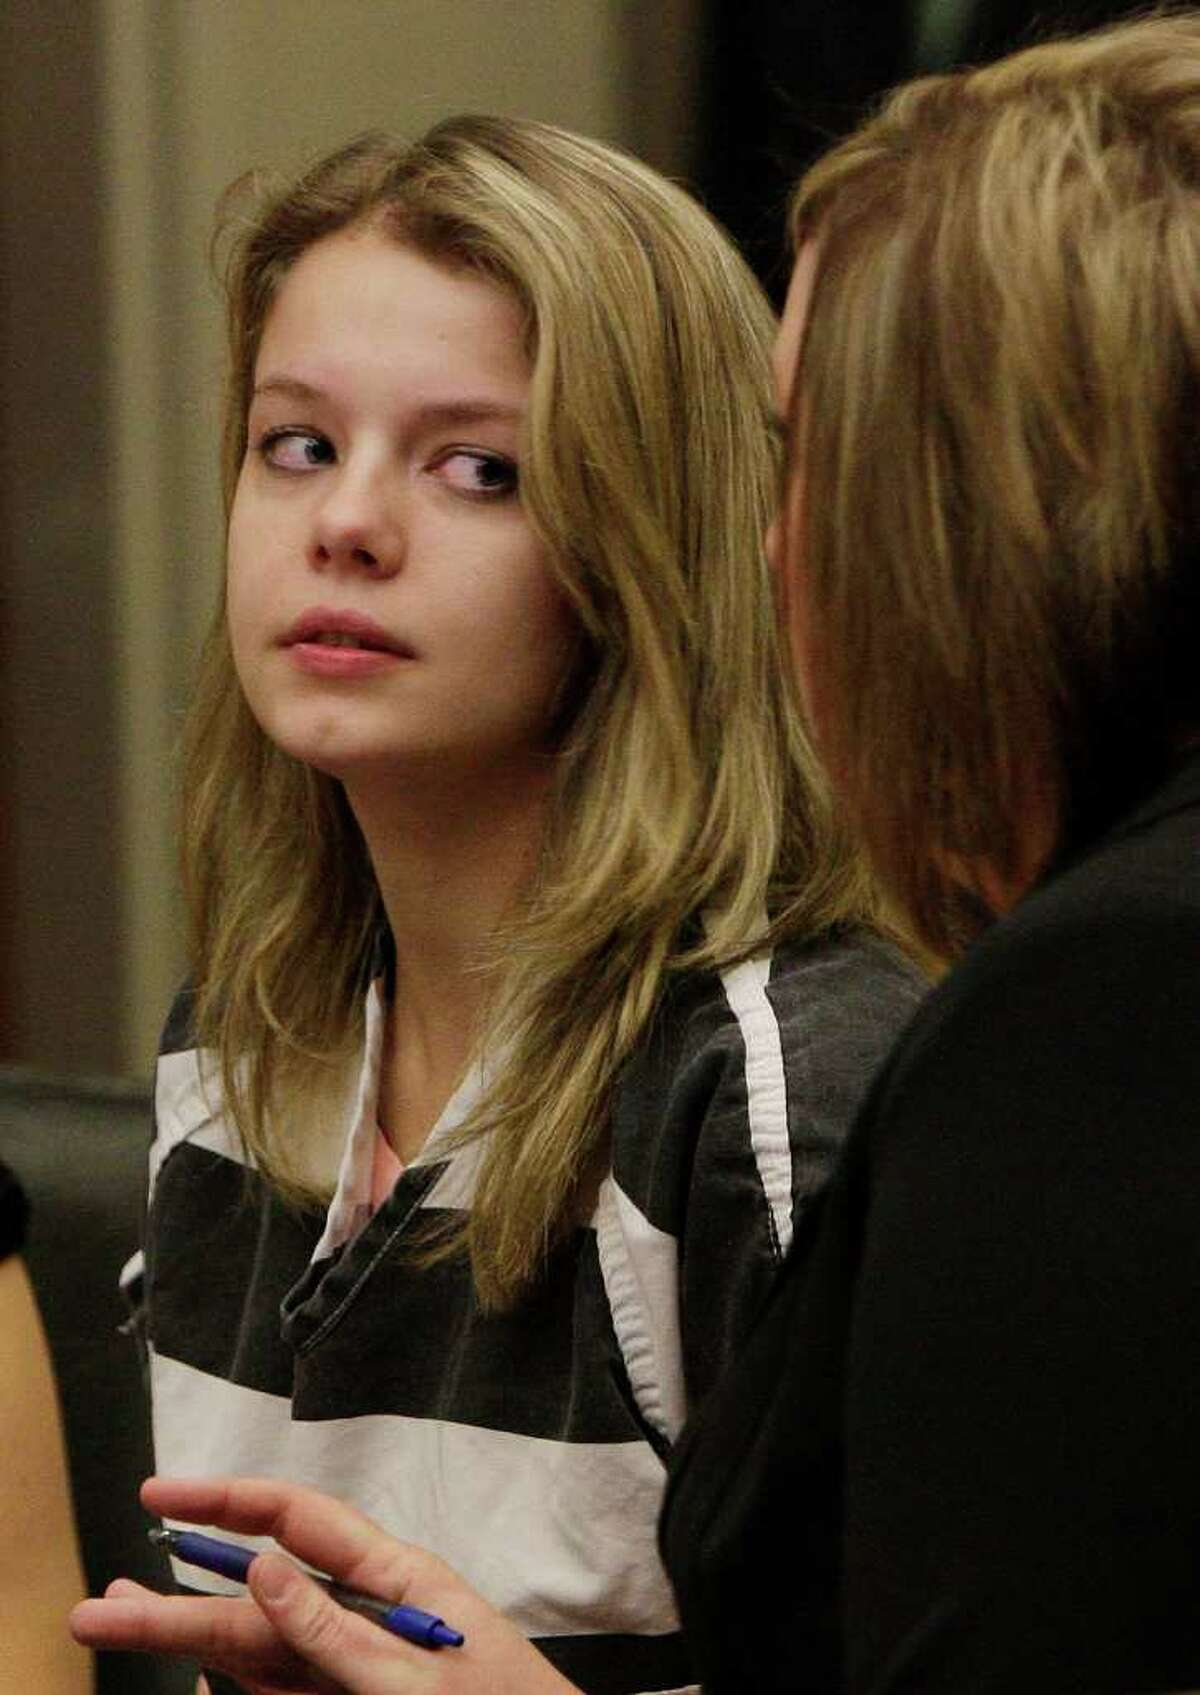 Elizabeth Johnson, left, mother of missing baby Gabriel, listens to her attorney Vanessa Smith, as Johnson appears for a hearing in Maricopa County Superior Court Wednesday, March 17, 2010, in Phoenix. Johnson had refused to leave her cell for a court hearing last week, but Judge Timothy Ryan ordered deputies to